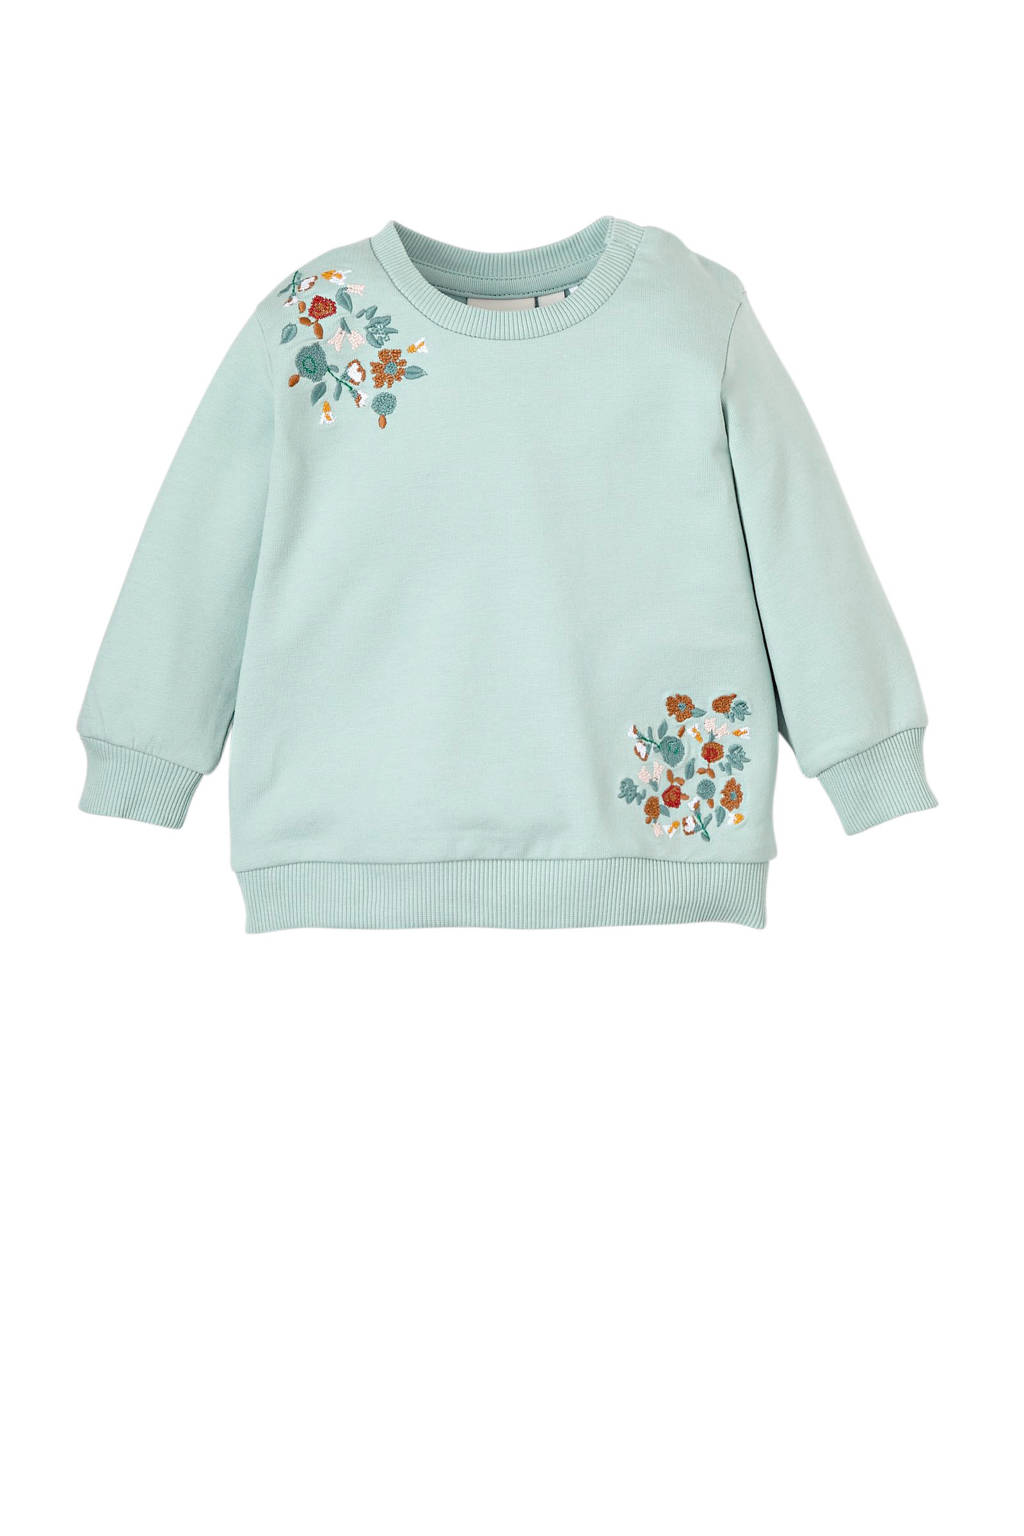 NAME IT BABY sweater Olympia met borduursels turquoise, Turquoise